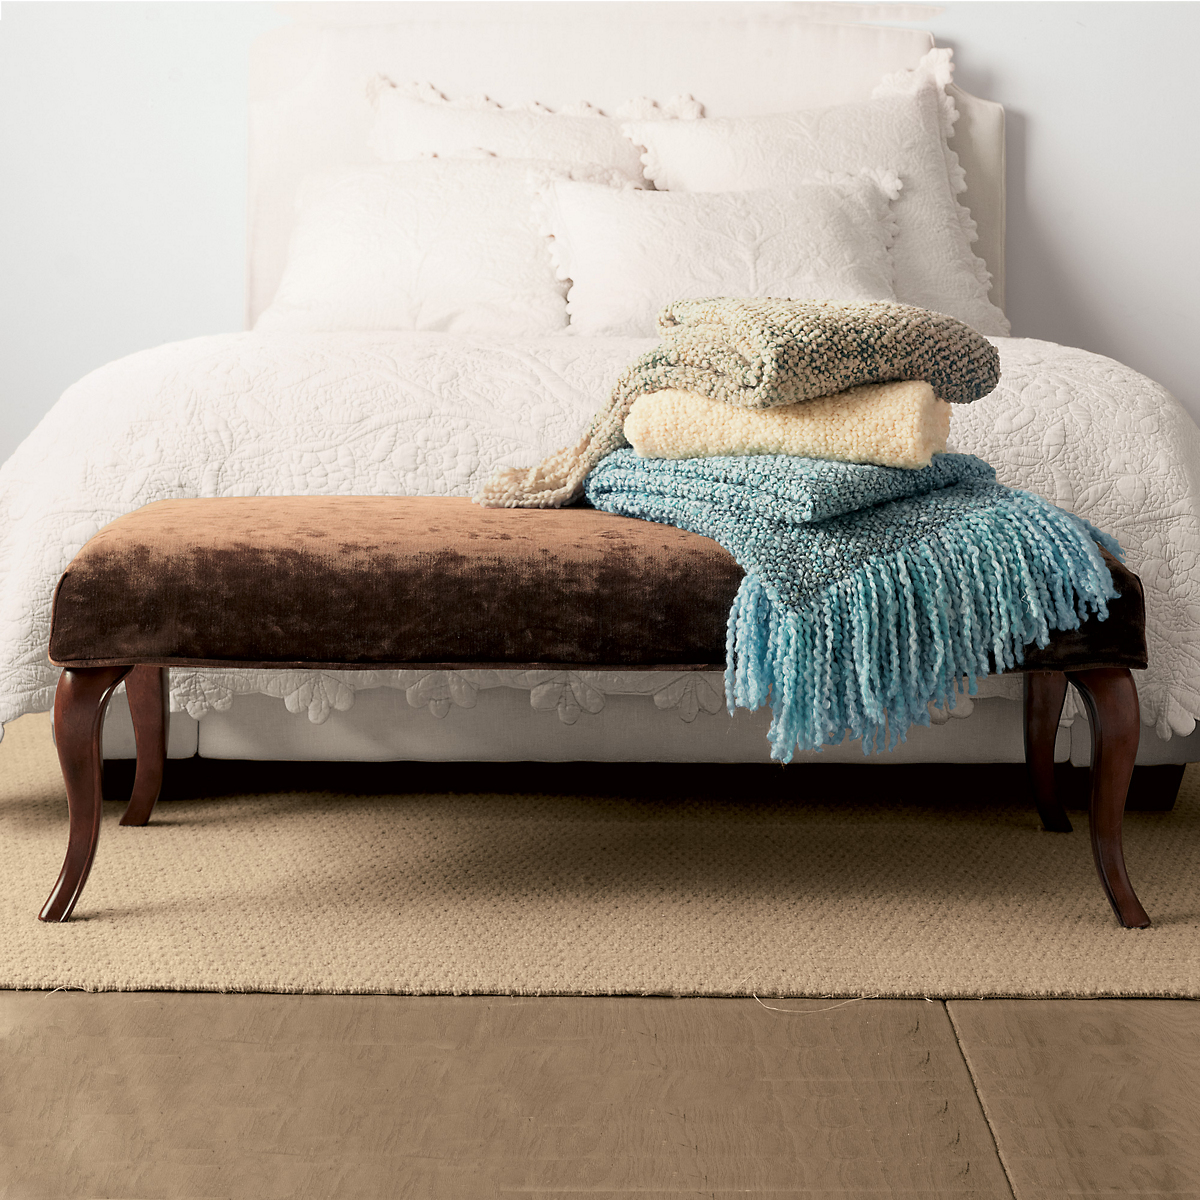 Queen Anne Slipcovered Bench Gump 39 S